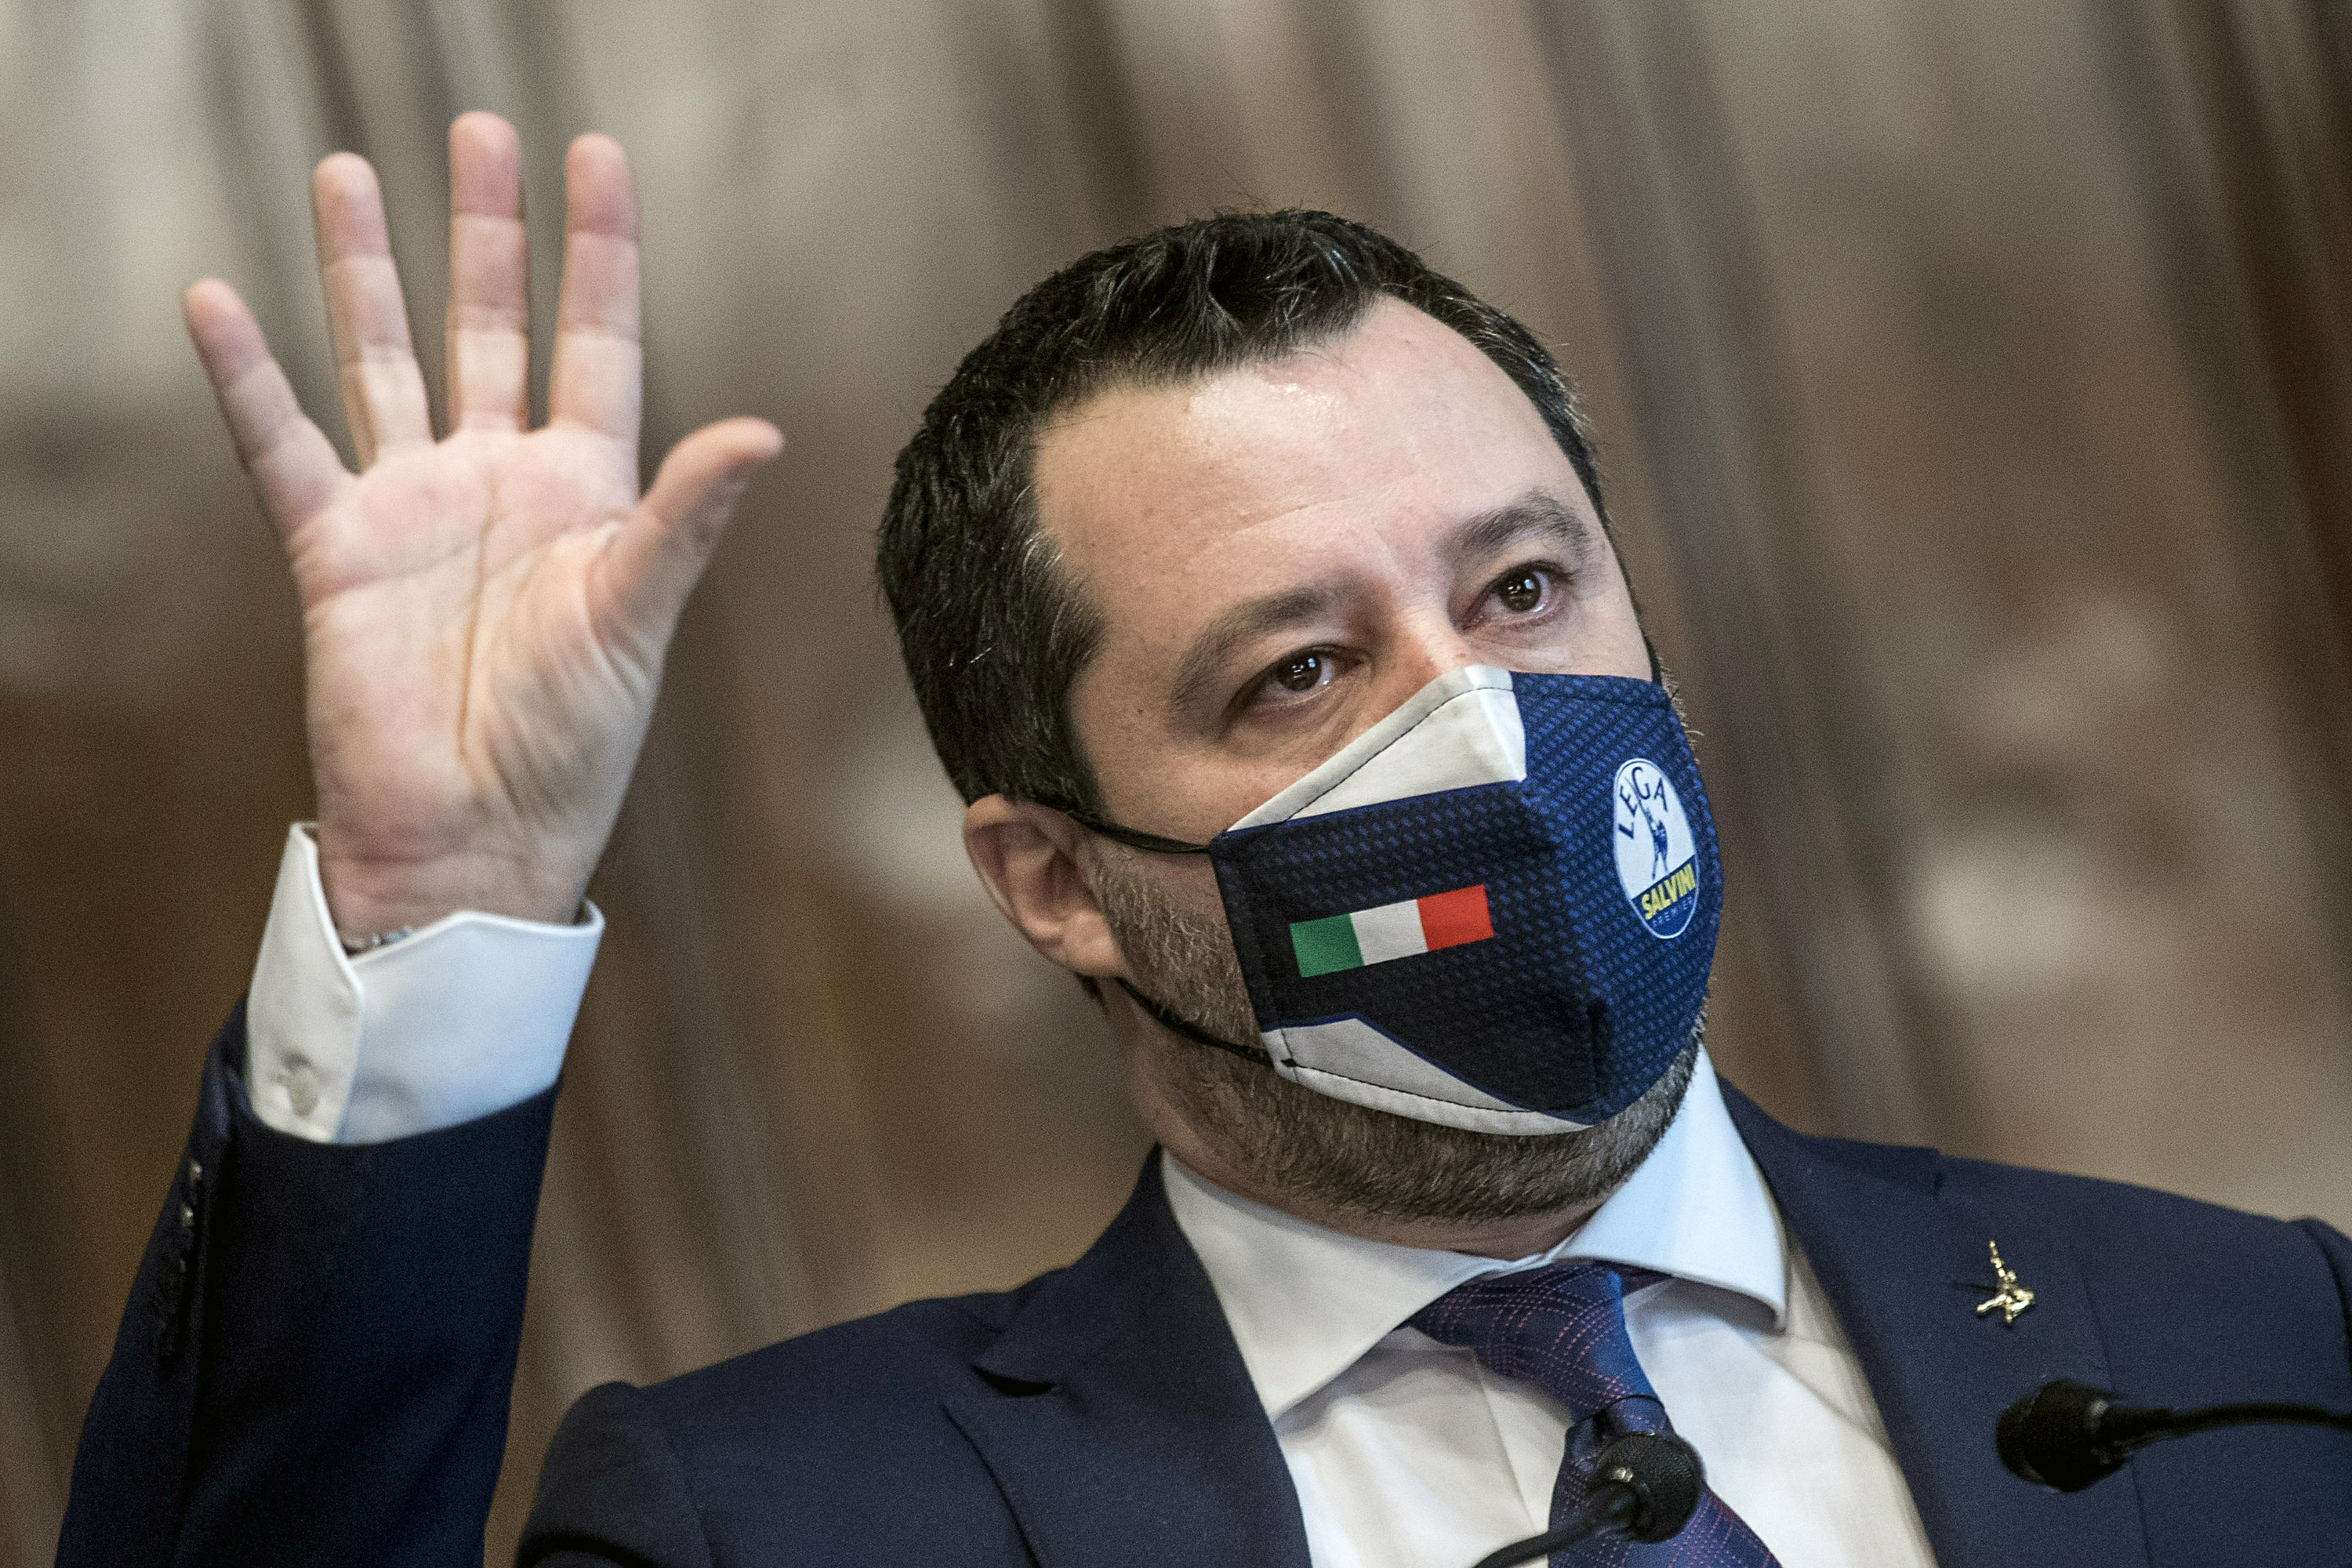 Italy's Draghi wins support of 2 rival parties for new govt